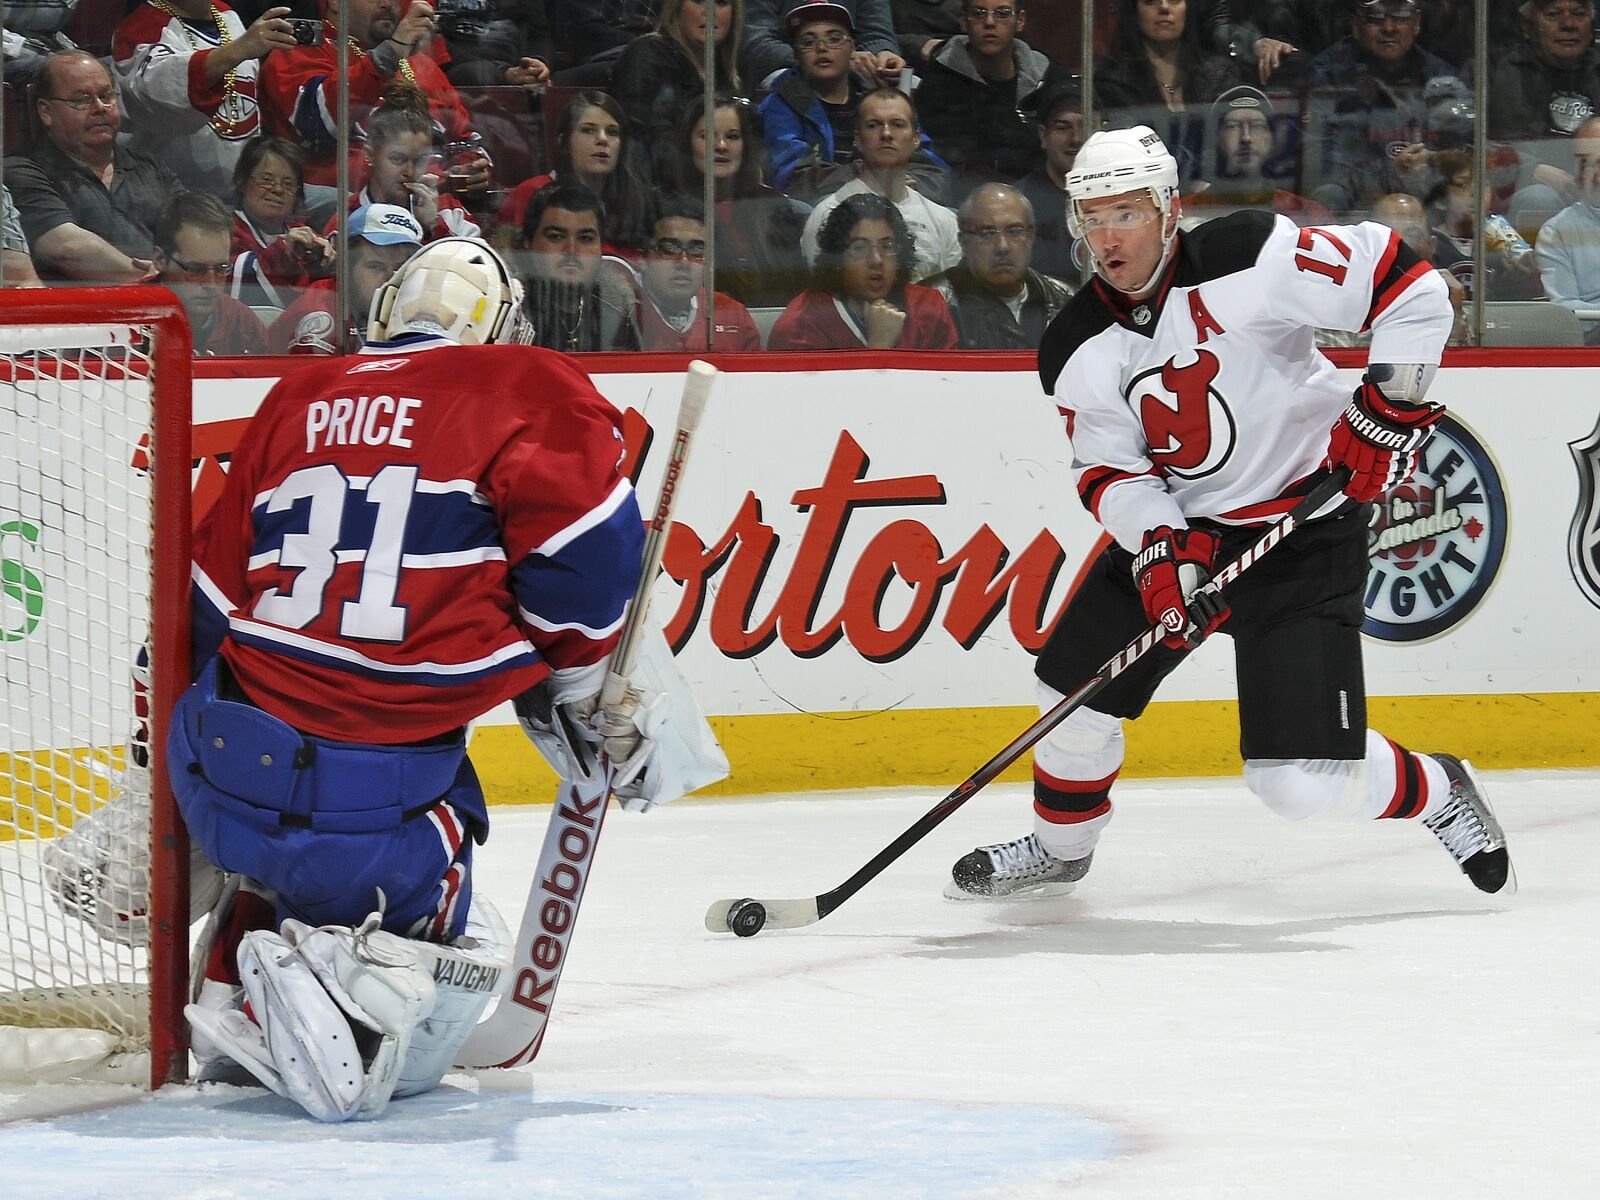 109048793-new-jersey-devils-v-montreal-canadiens.jpg